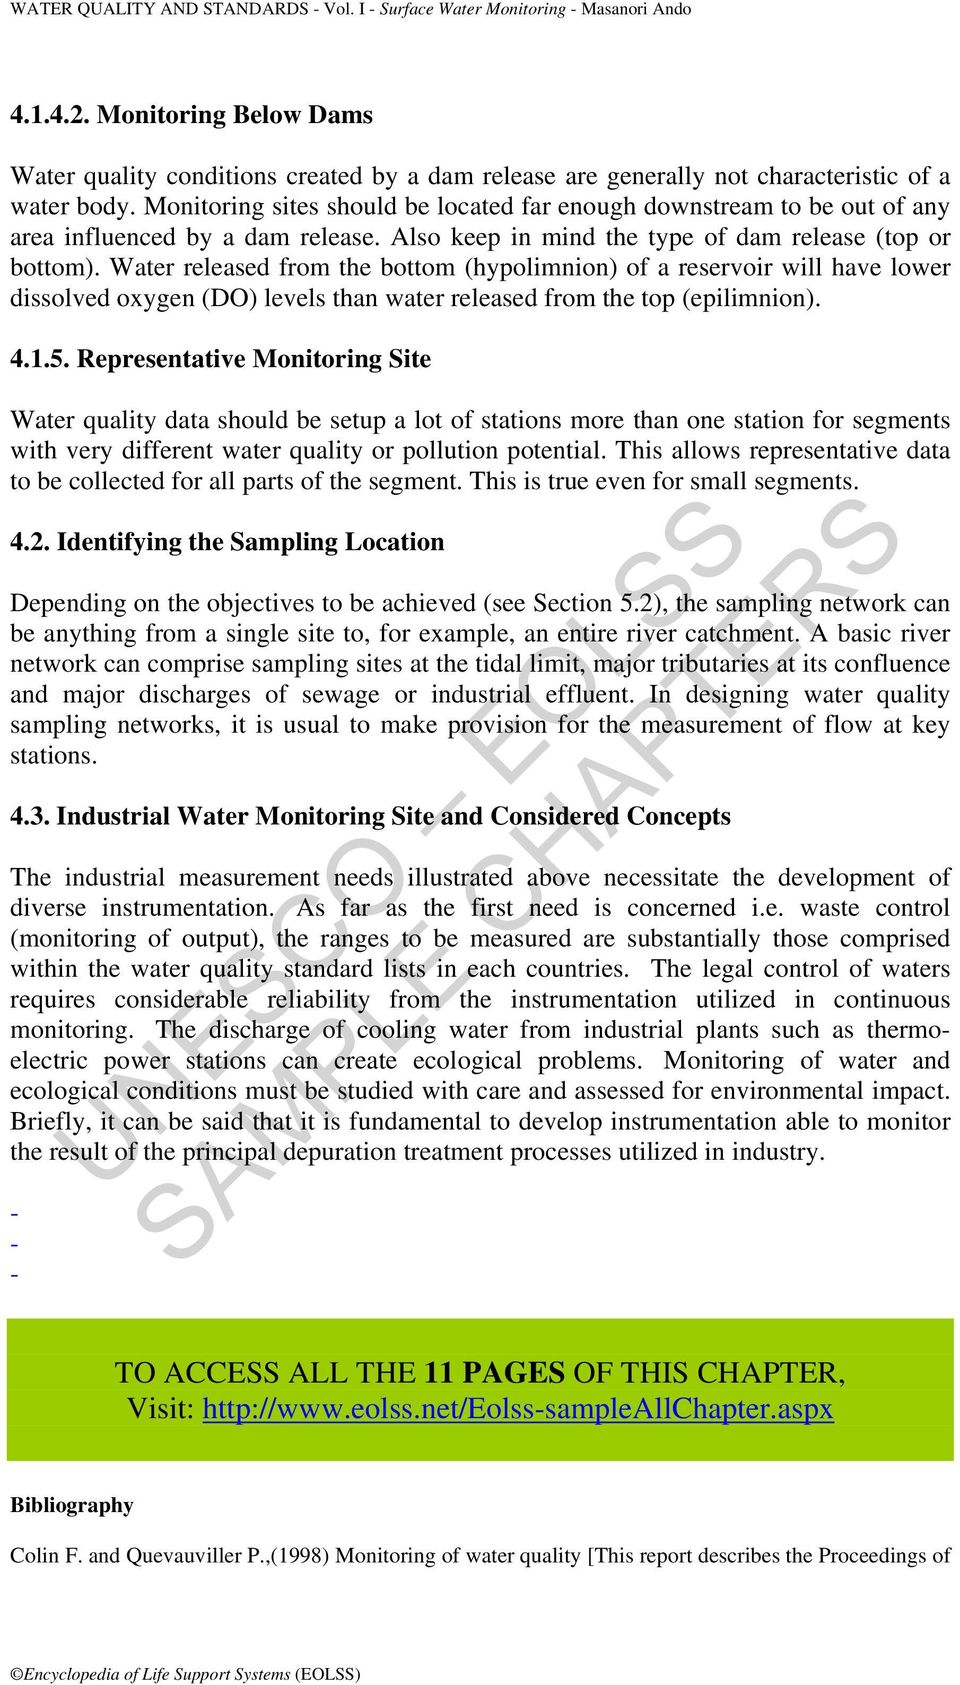 SAMPLE CHAPTERS UNESCO EOLSS SURFACE WATER MONITORING  Masanori Ando